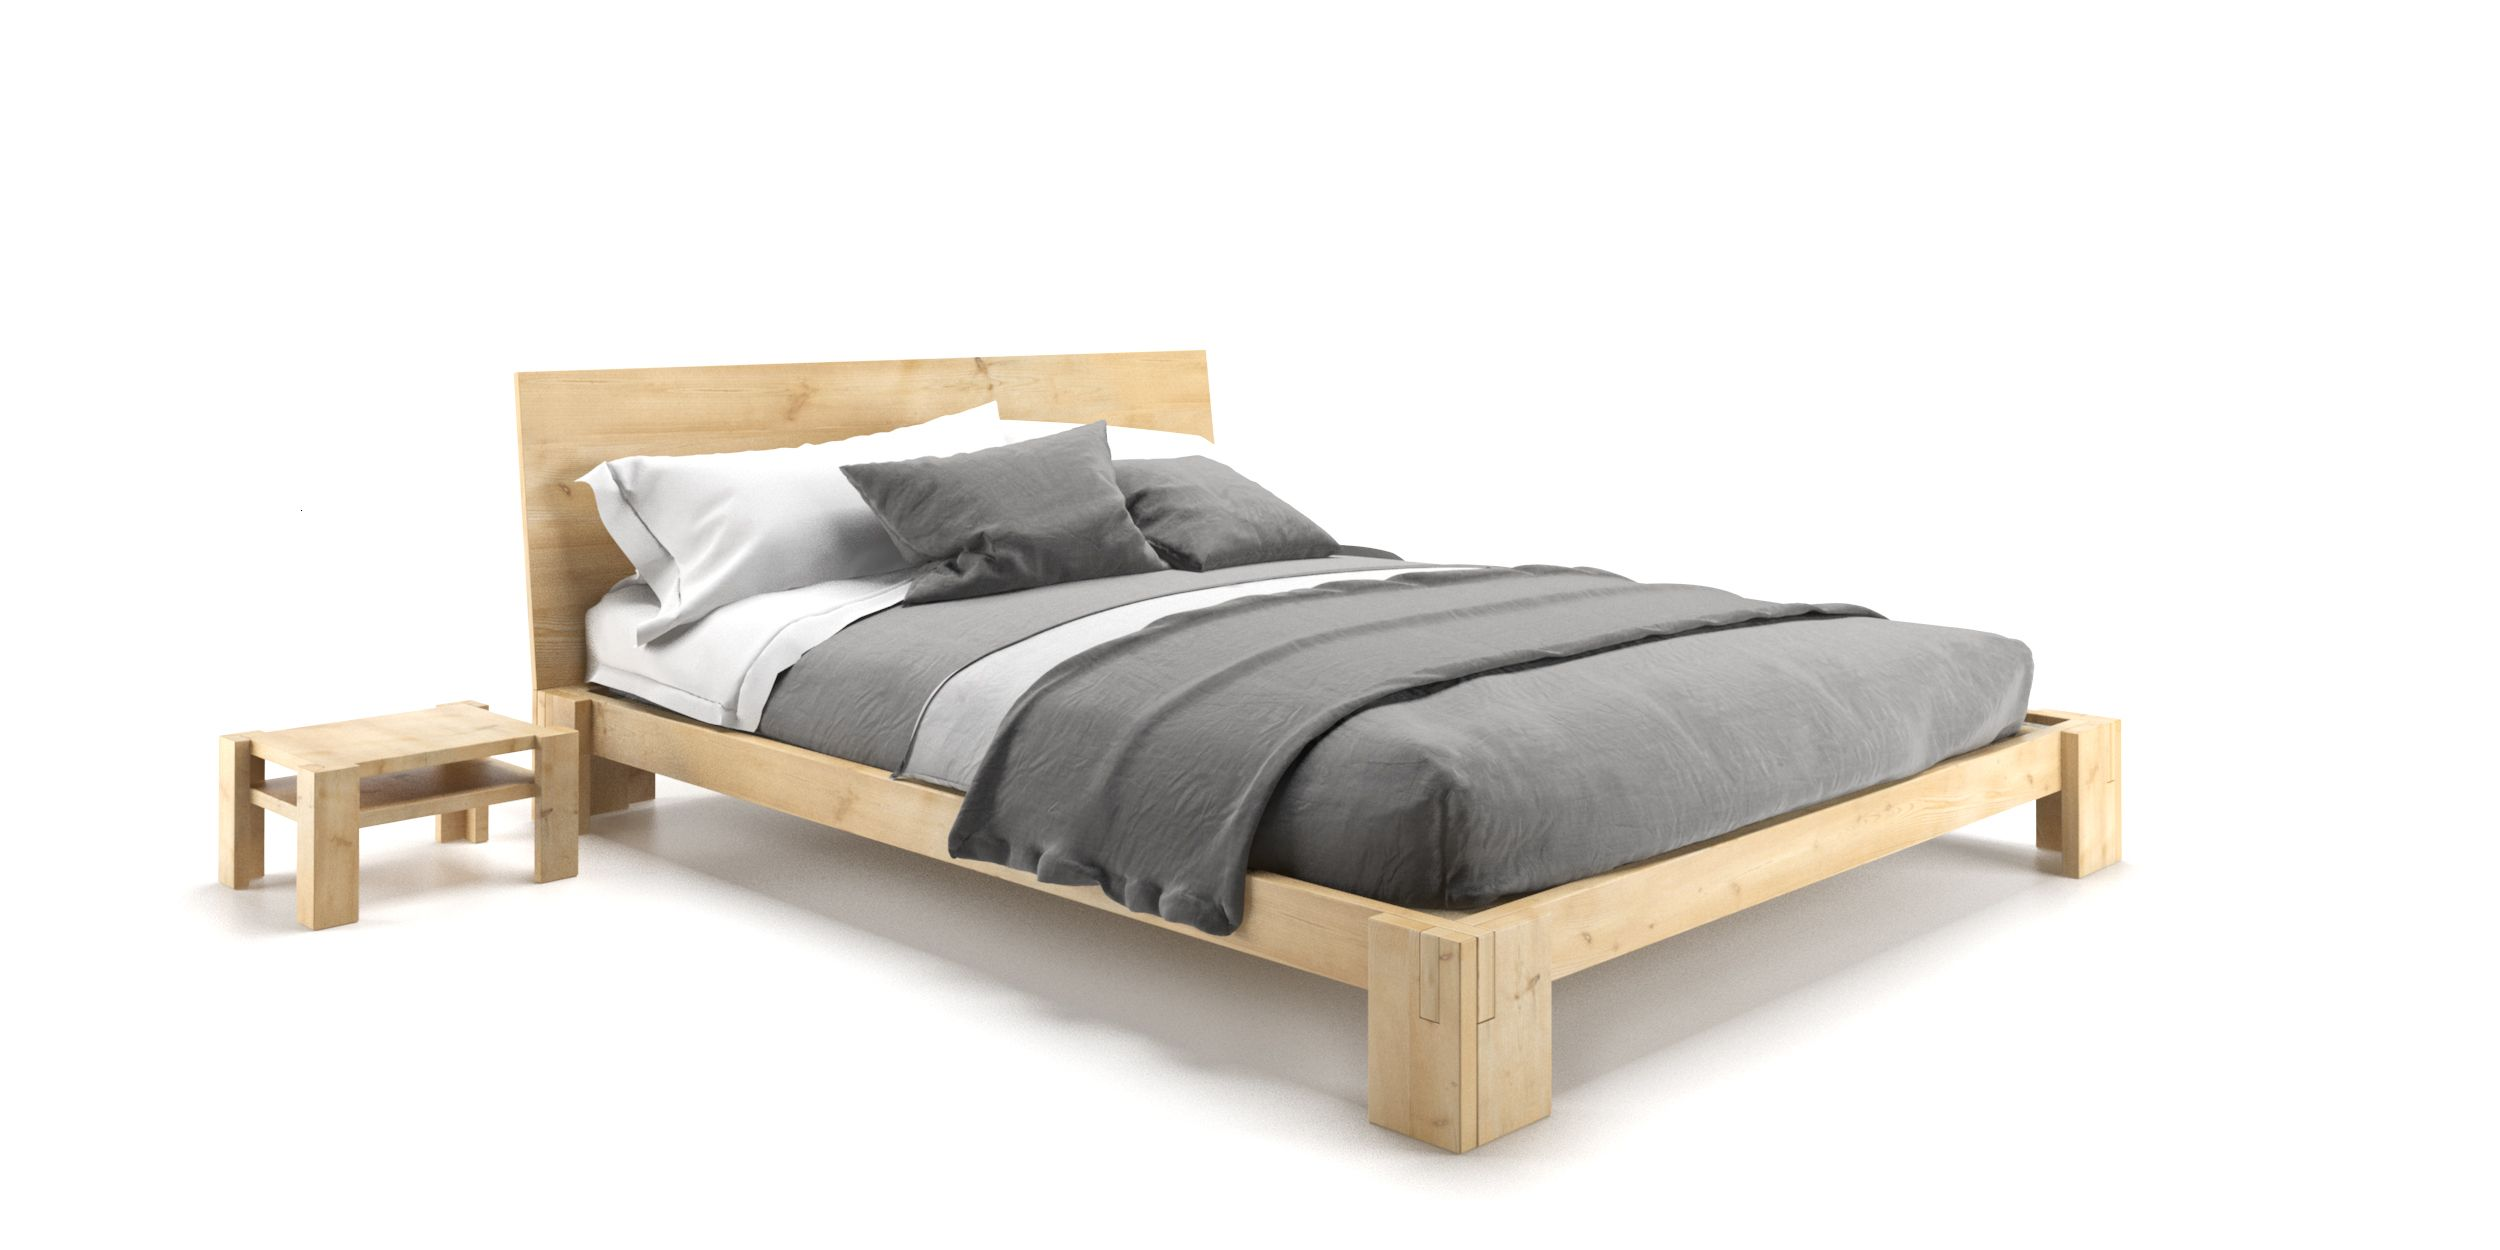 Tokio More Than Just A Bed Its Simplicity And Its Geometric